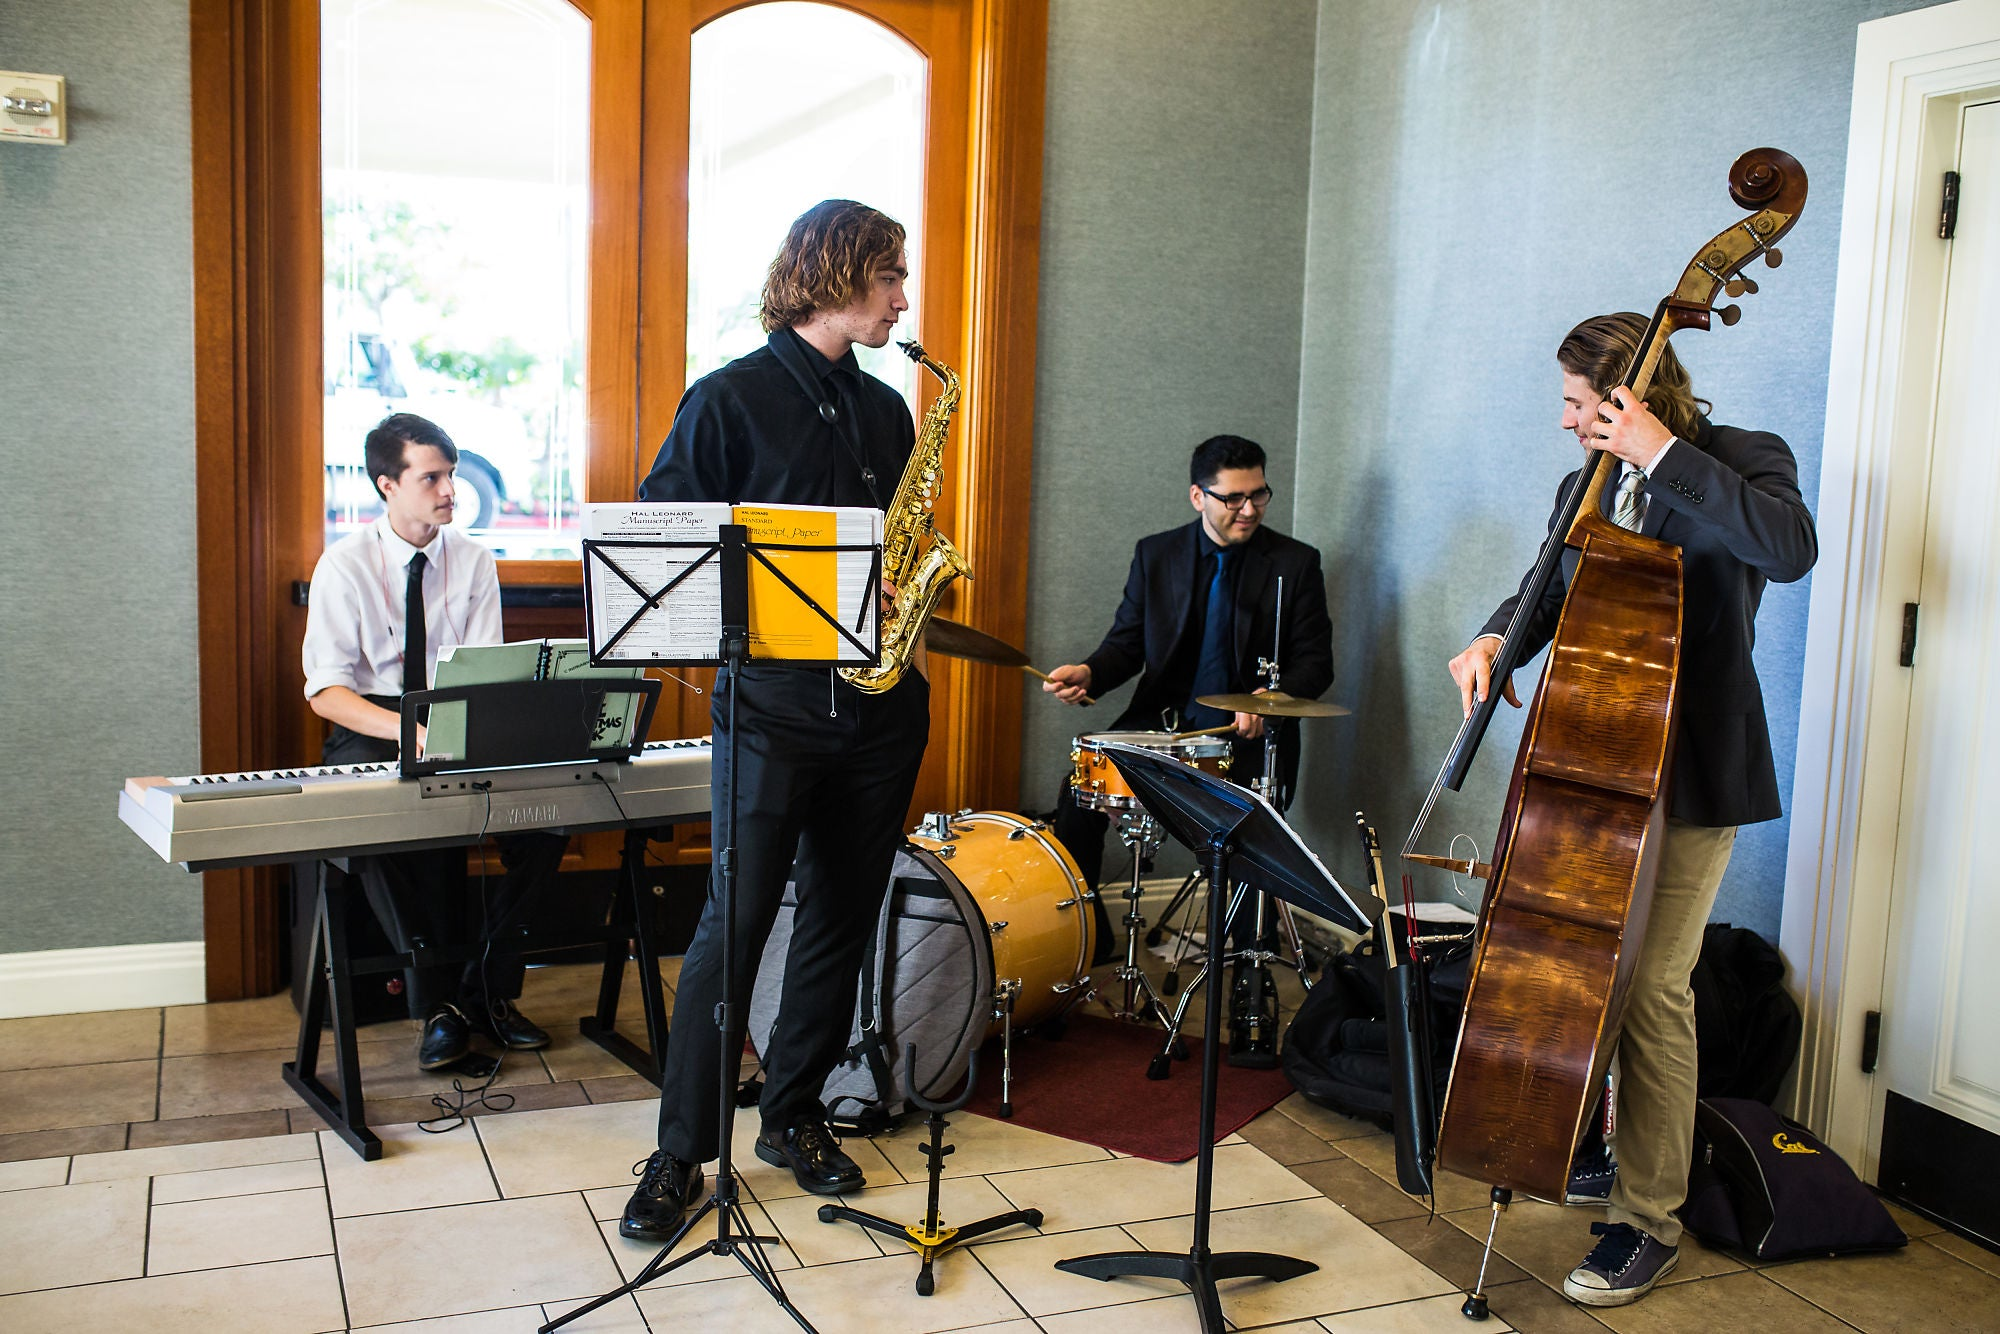 Four people playing piano, saxophone, drums, and double bass respectively